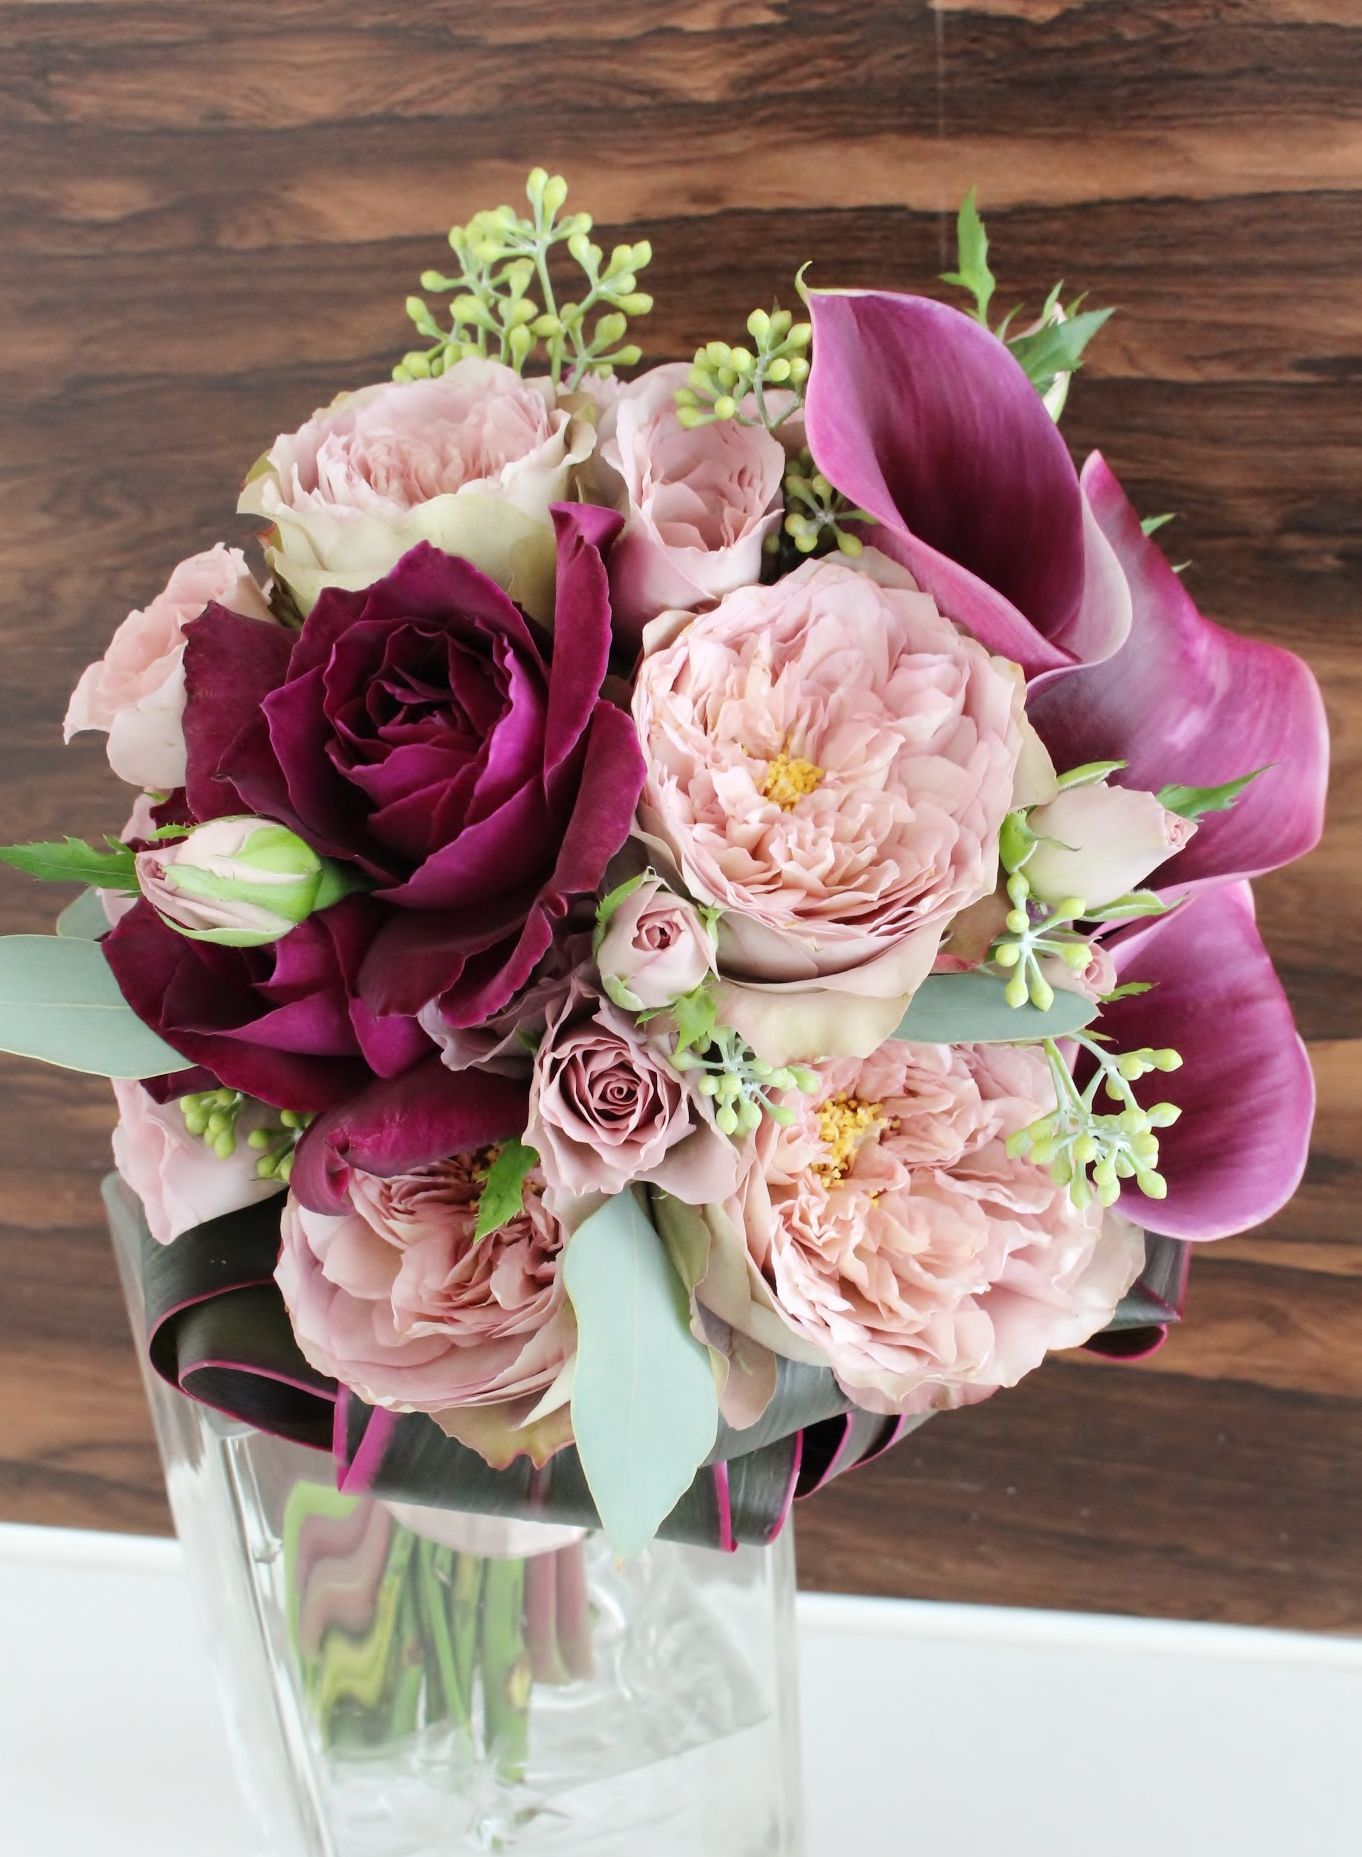 Vress et rose wedding pink smoky pink round bouquet clutch vress et rose wedding pink pink round bouquet bouquet natural flower so very pretty great contrast in colours izmirmasajfo